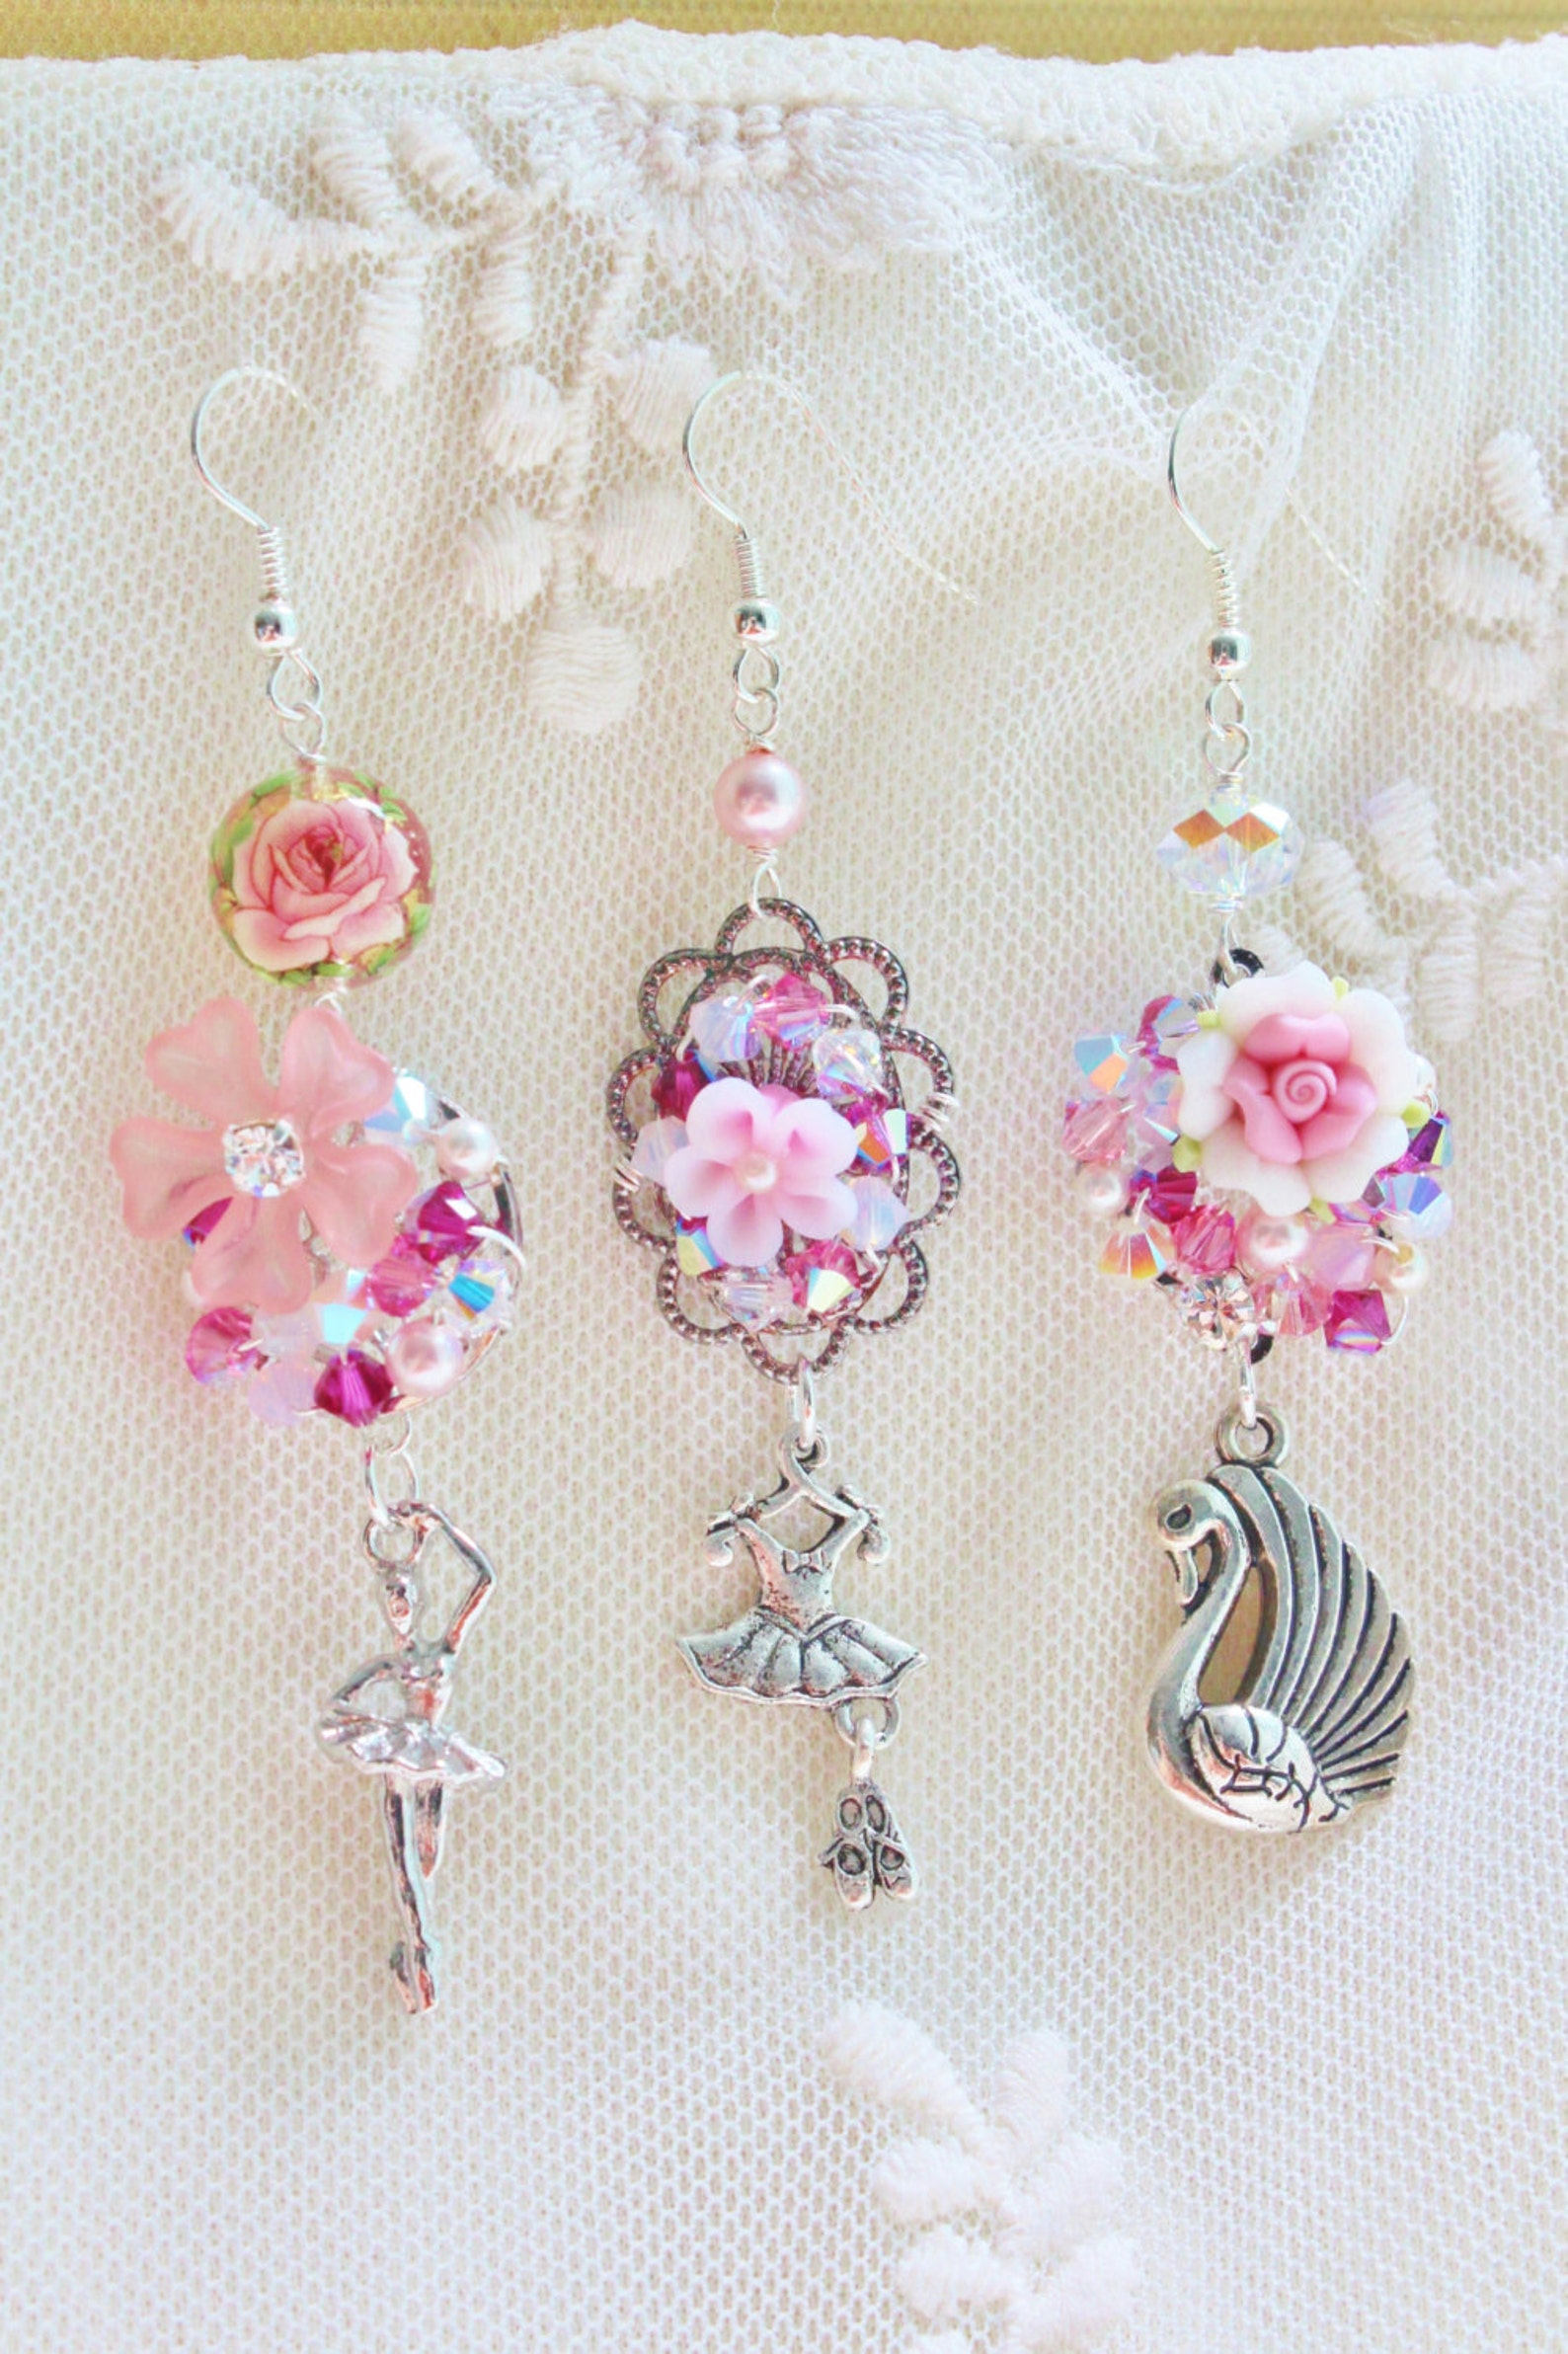 swan lake ballerina trio mismatched earrings - romantic jewelry - pewter tutu skirt, ballet slippers, swan charms, pink polymer